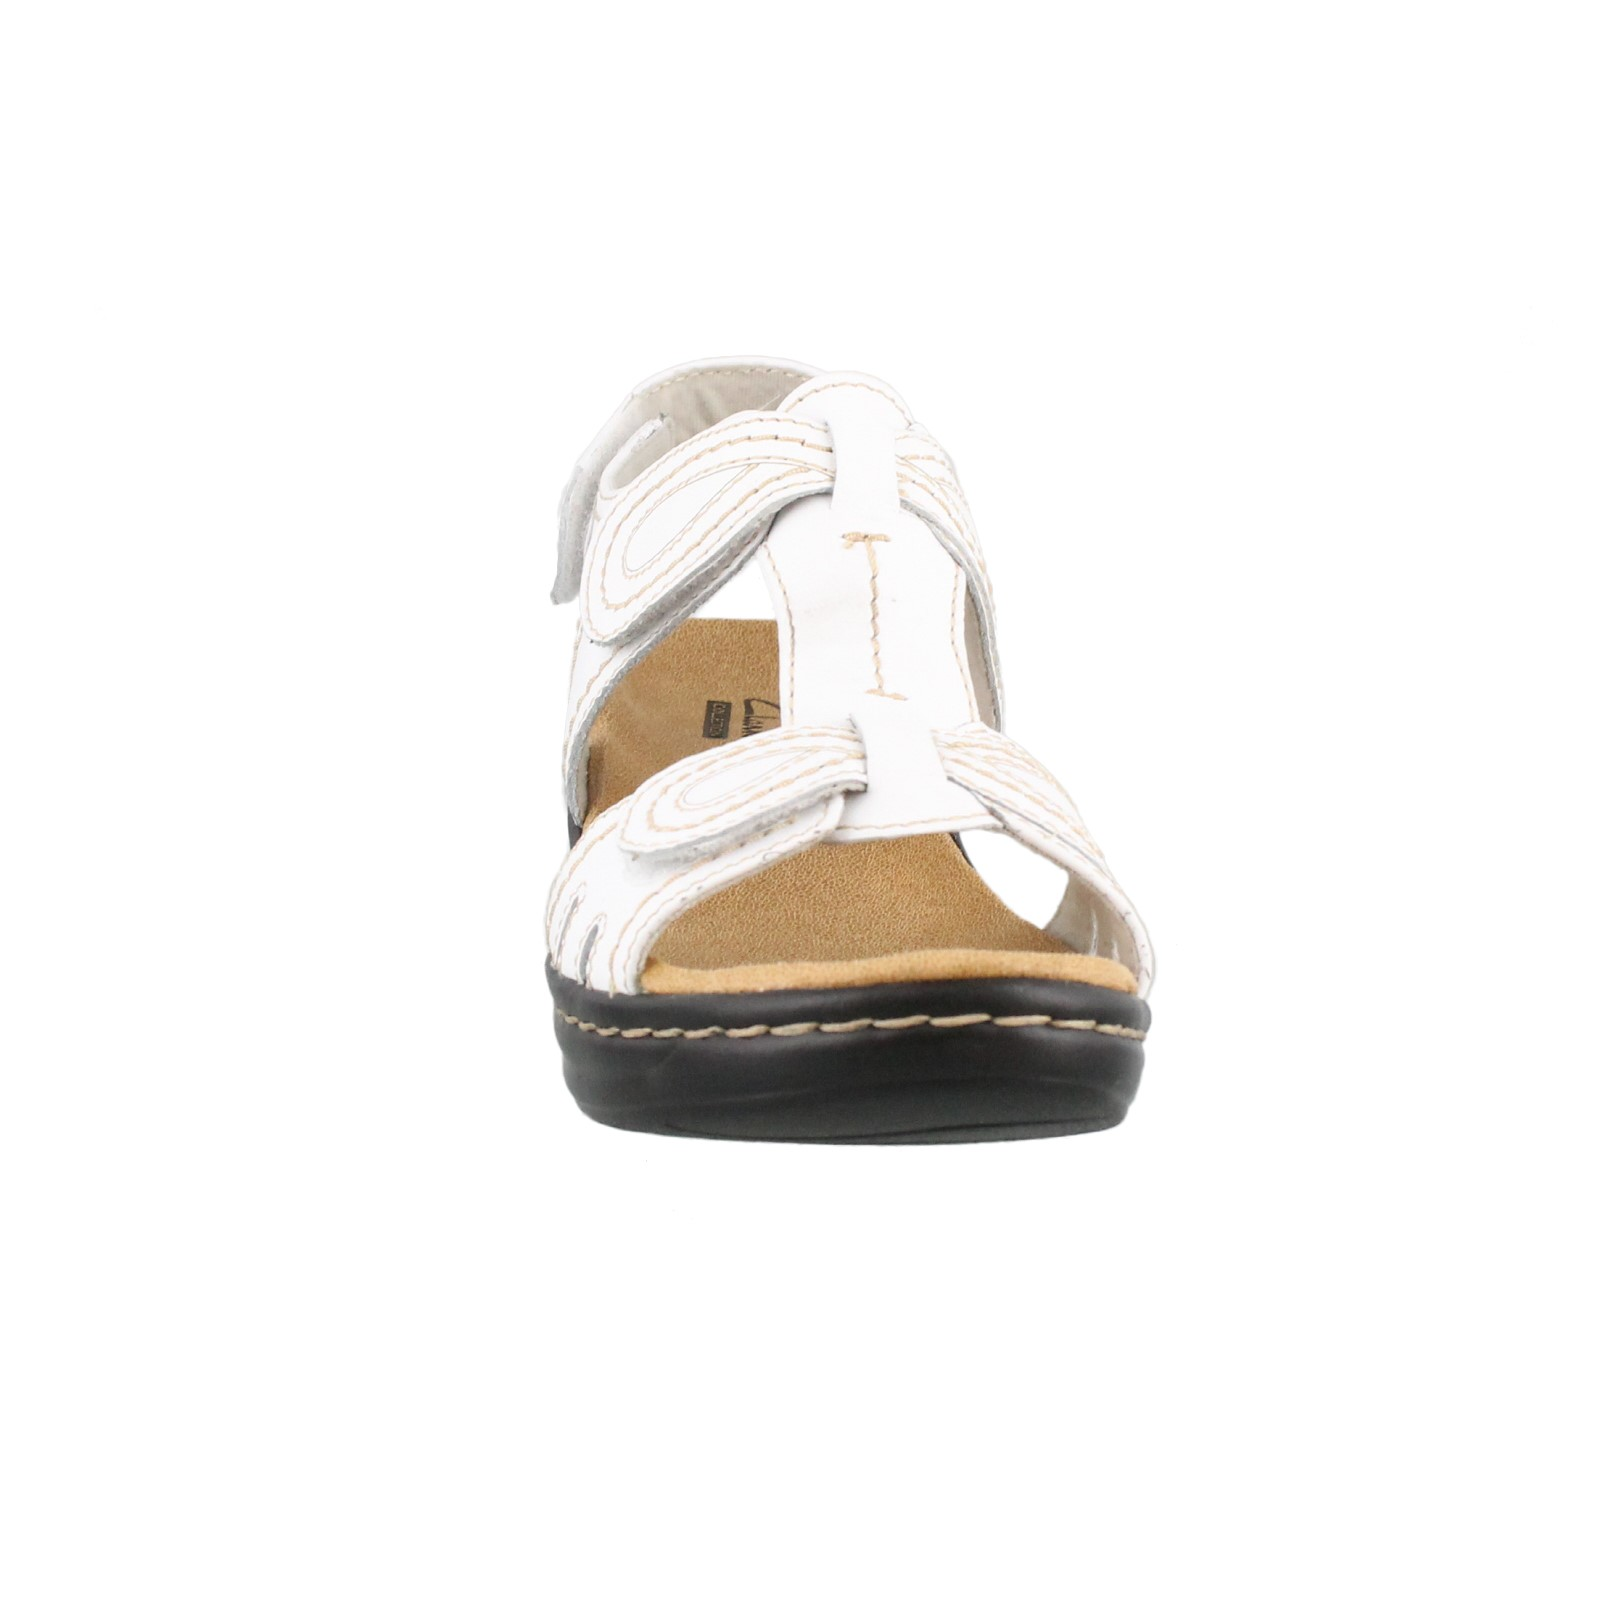 935d98d305a5 Next. add to favorites. Women s Clarks